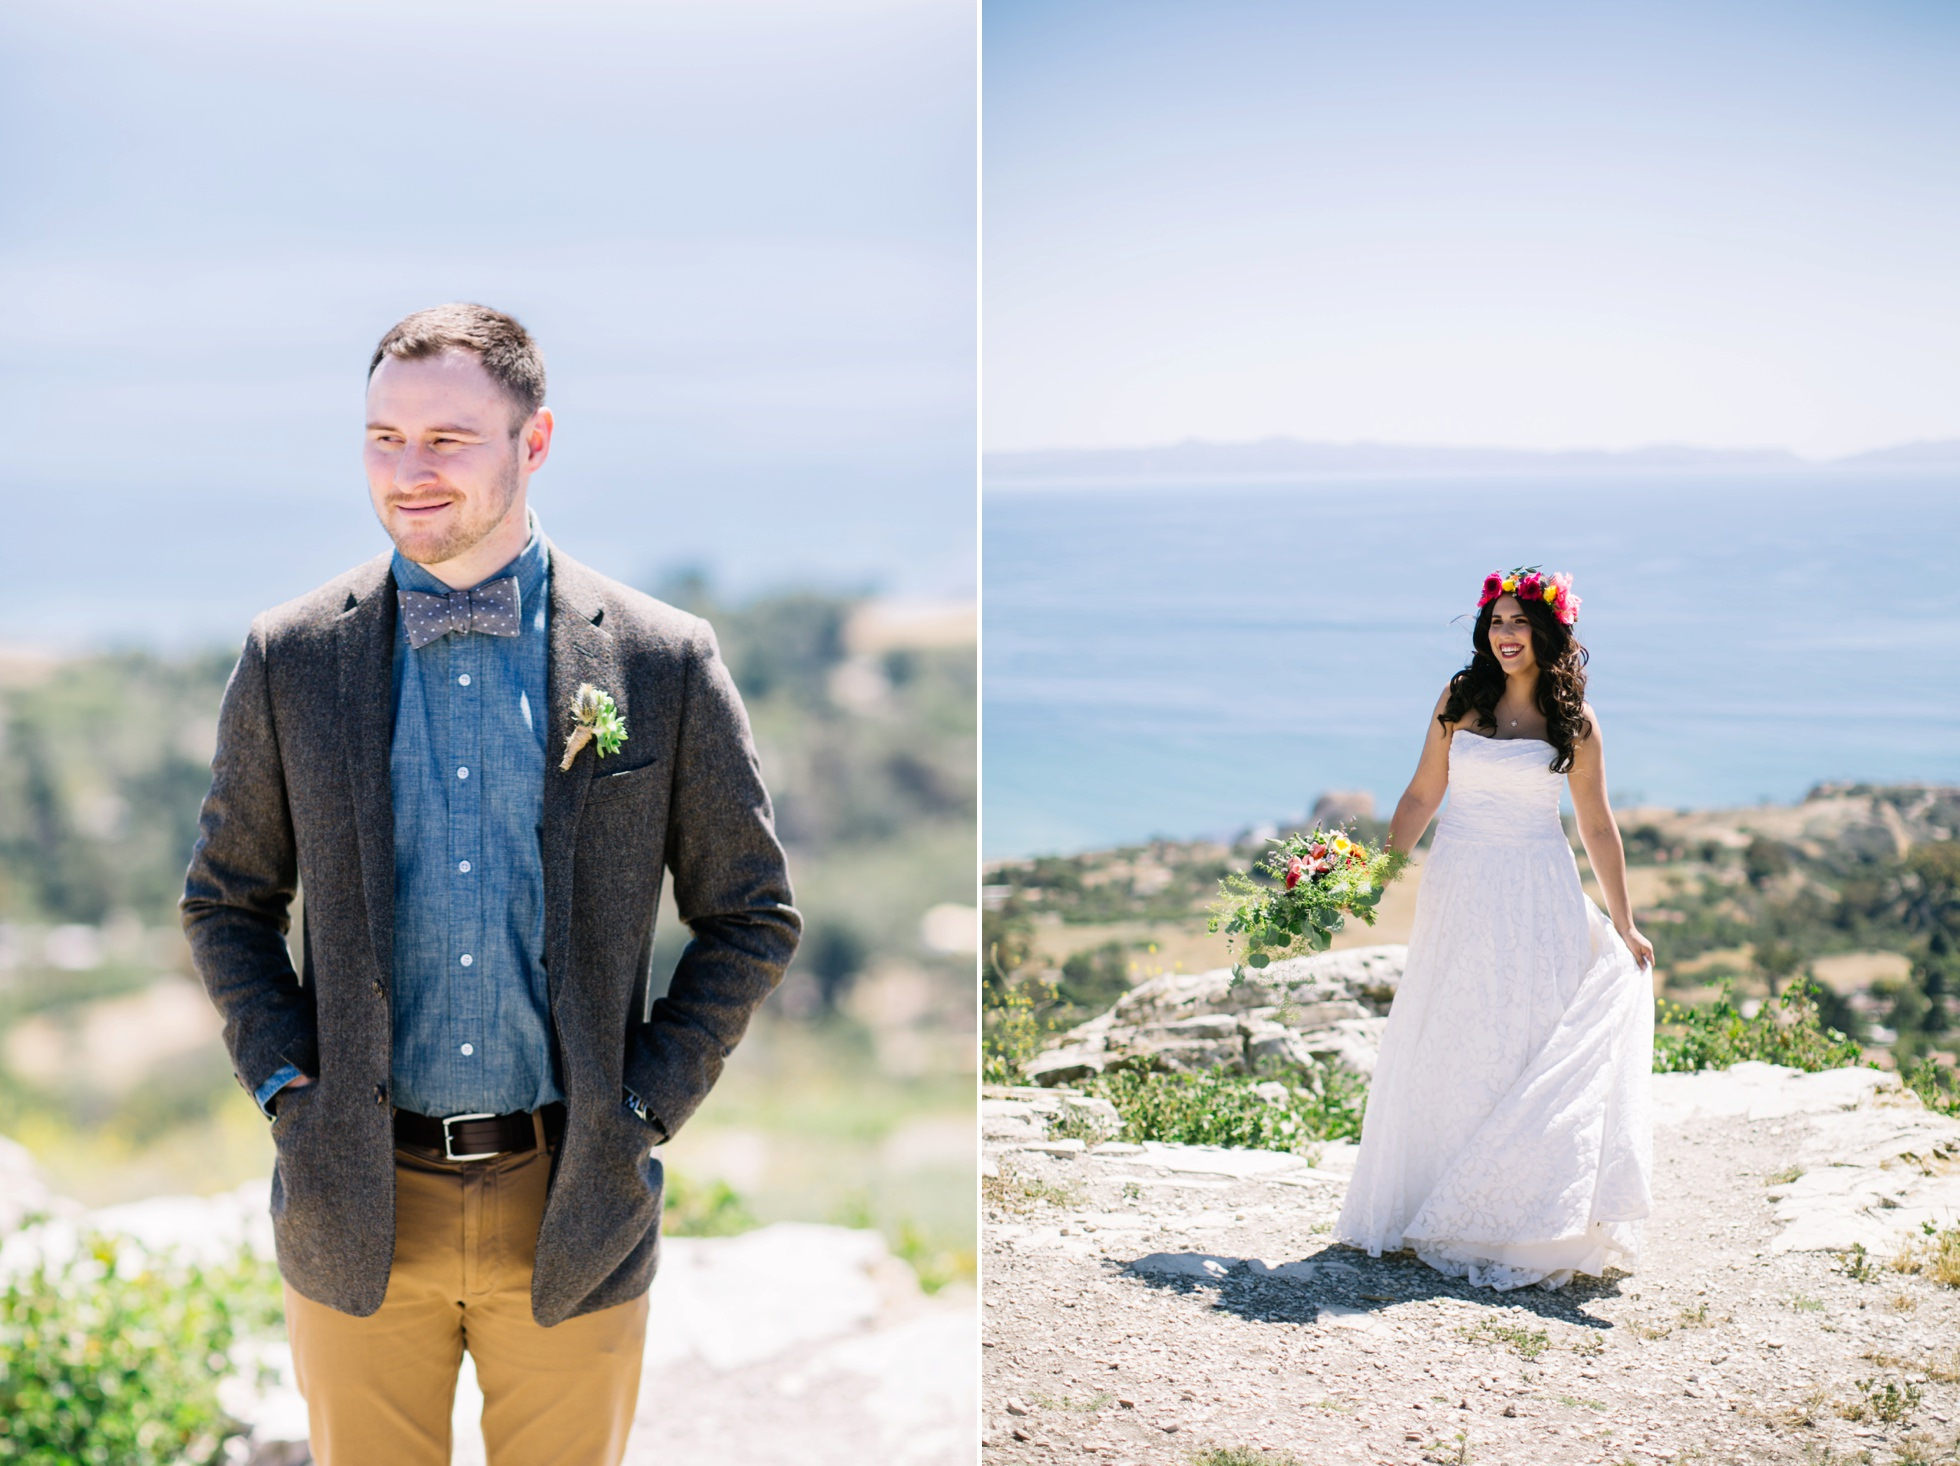 Palos Verdes Southern California Destination Wedding | brittneyraine.com 0029